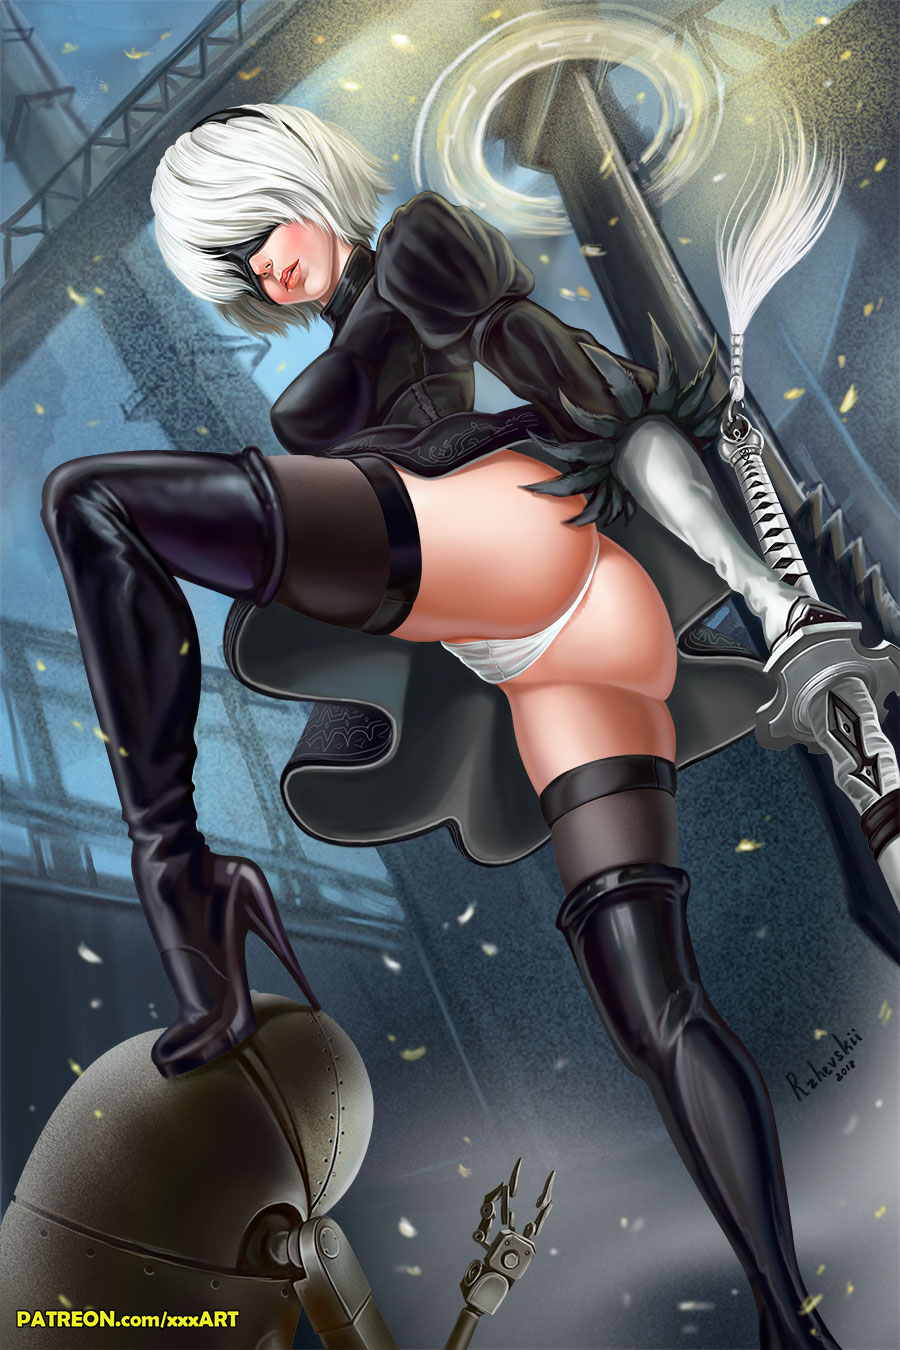 1girl ass black_dress black_hairband blindfold boots cleavage_cutout covered_eyes crotch dress feather-trimmed_sleeves from_below hairband high_heel_boots high_heels highres holding holding_sword holding_weapon juliet_sleeves leotard long_sleeves nier_(series) nier_automata panties pantyshot pink_lips puffy_sleeves ribbed_dress robot rzhevskii silver_hair skirt stepped_on sword thigh_boots thighhighs thighhighs_under_boots thighs underwear upskirt vambraces weapon white_leotard yorha_no._2_type_b